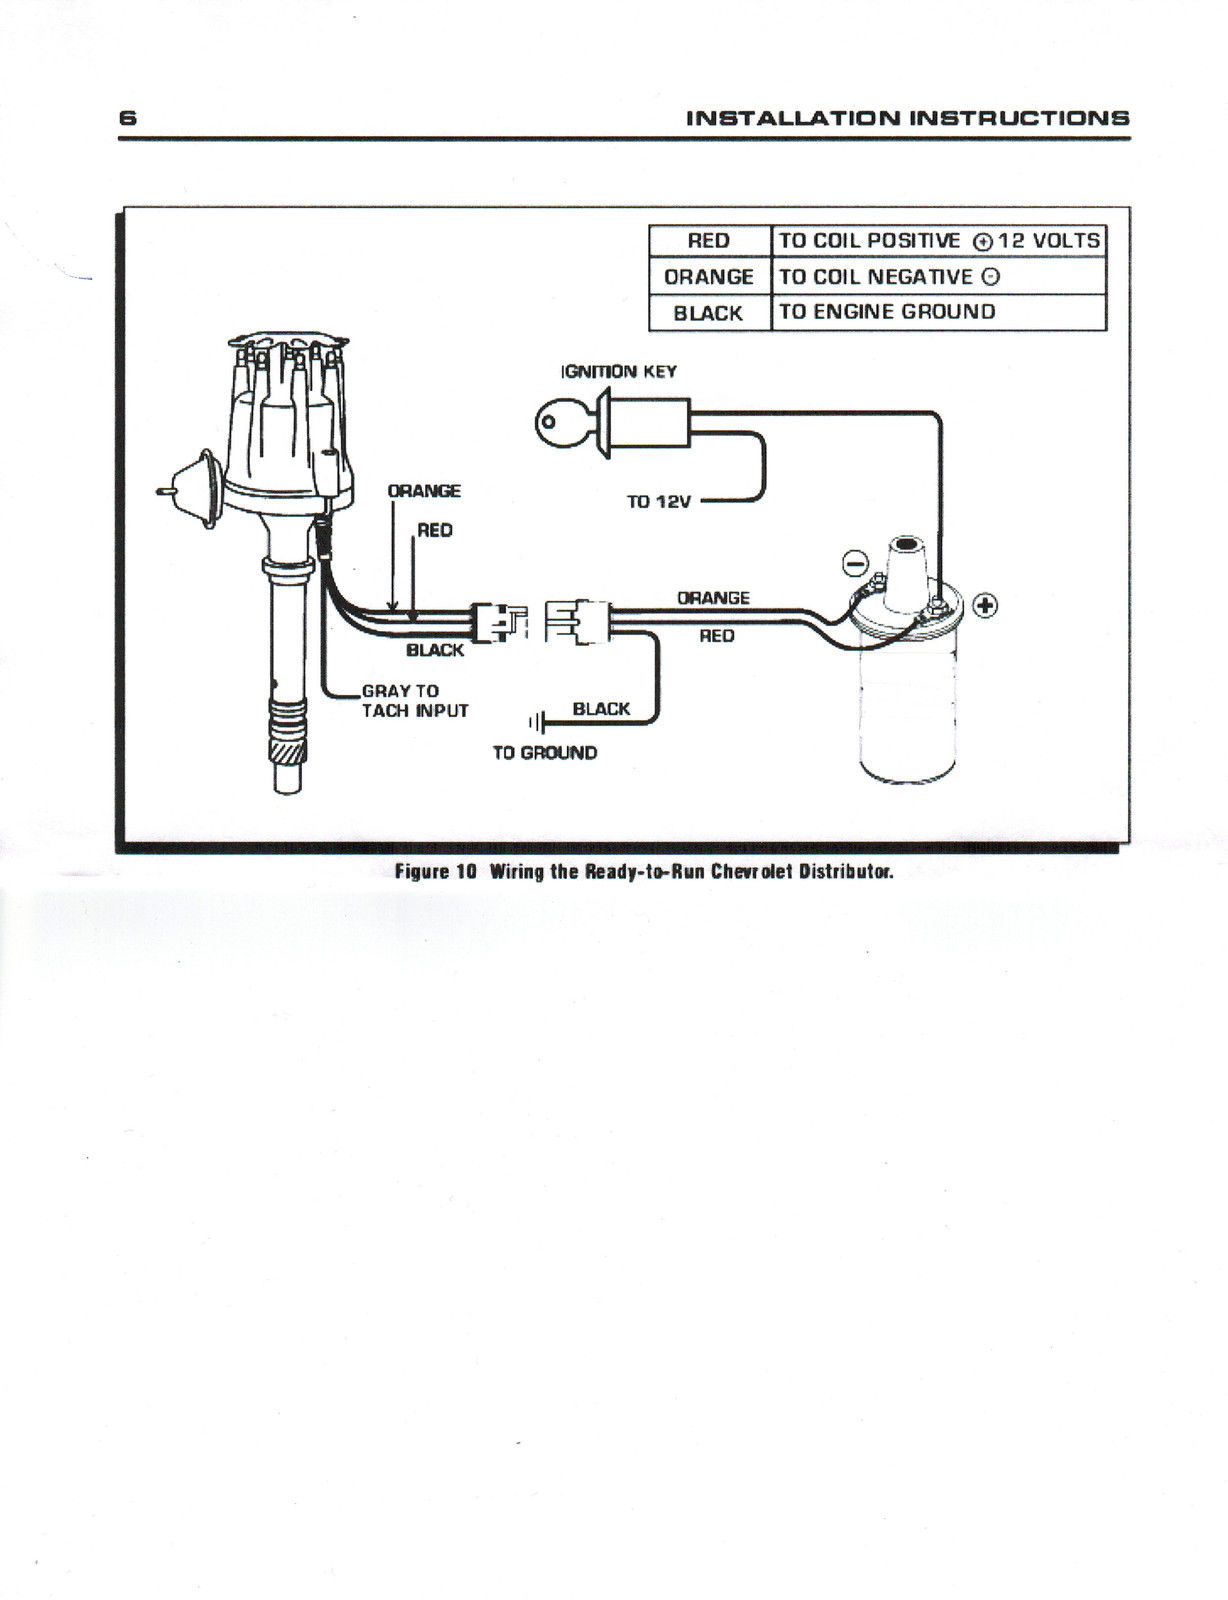 765163 Ignition Box Wiring Diagram | Wiring Resources on john deere rx75 wiring diagram, john deere lx178 wiring diagram, john deere lx277 wiring diagram, john deere srx75 wiring diagram, john deere lx173 wiring diagram, john deere s92 wiring diagram,